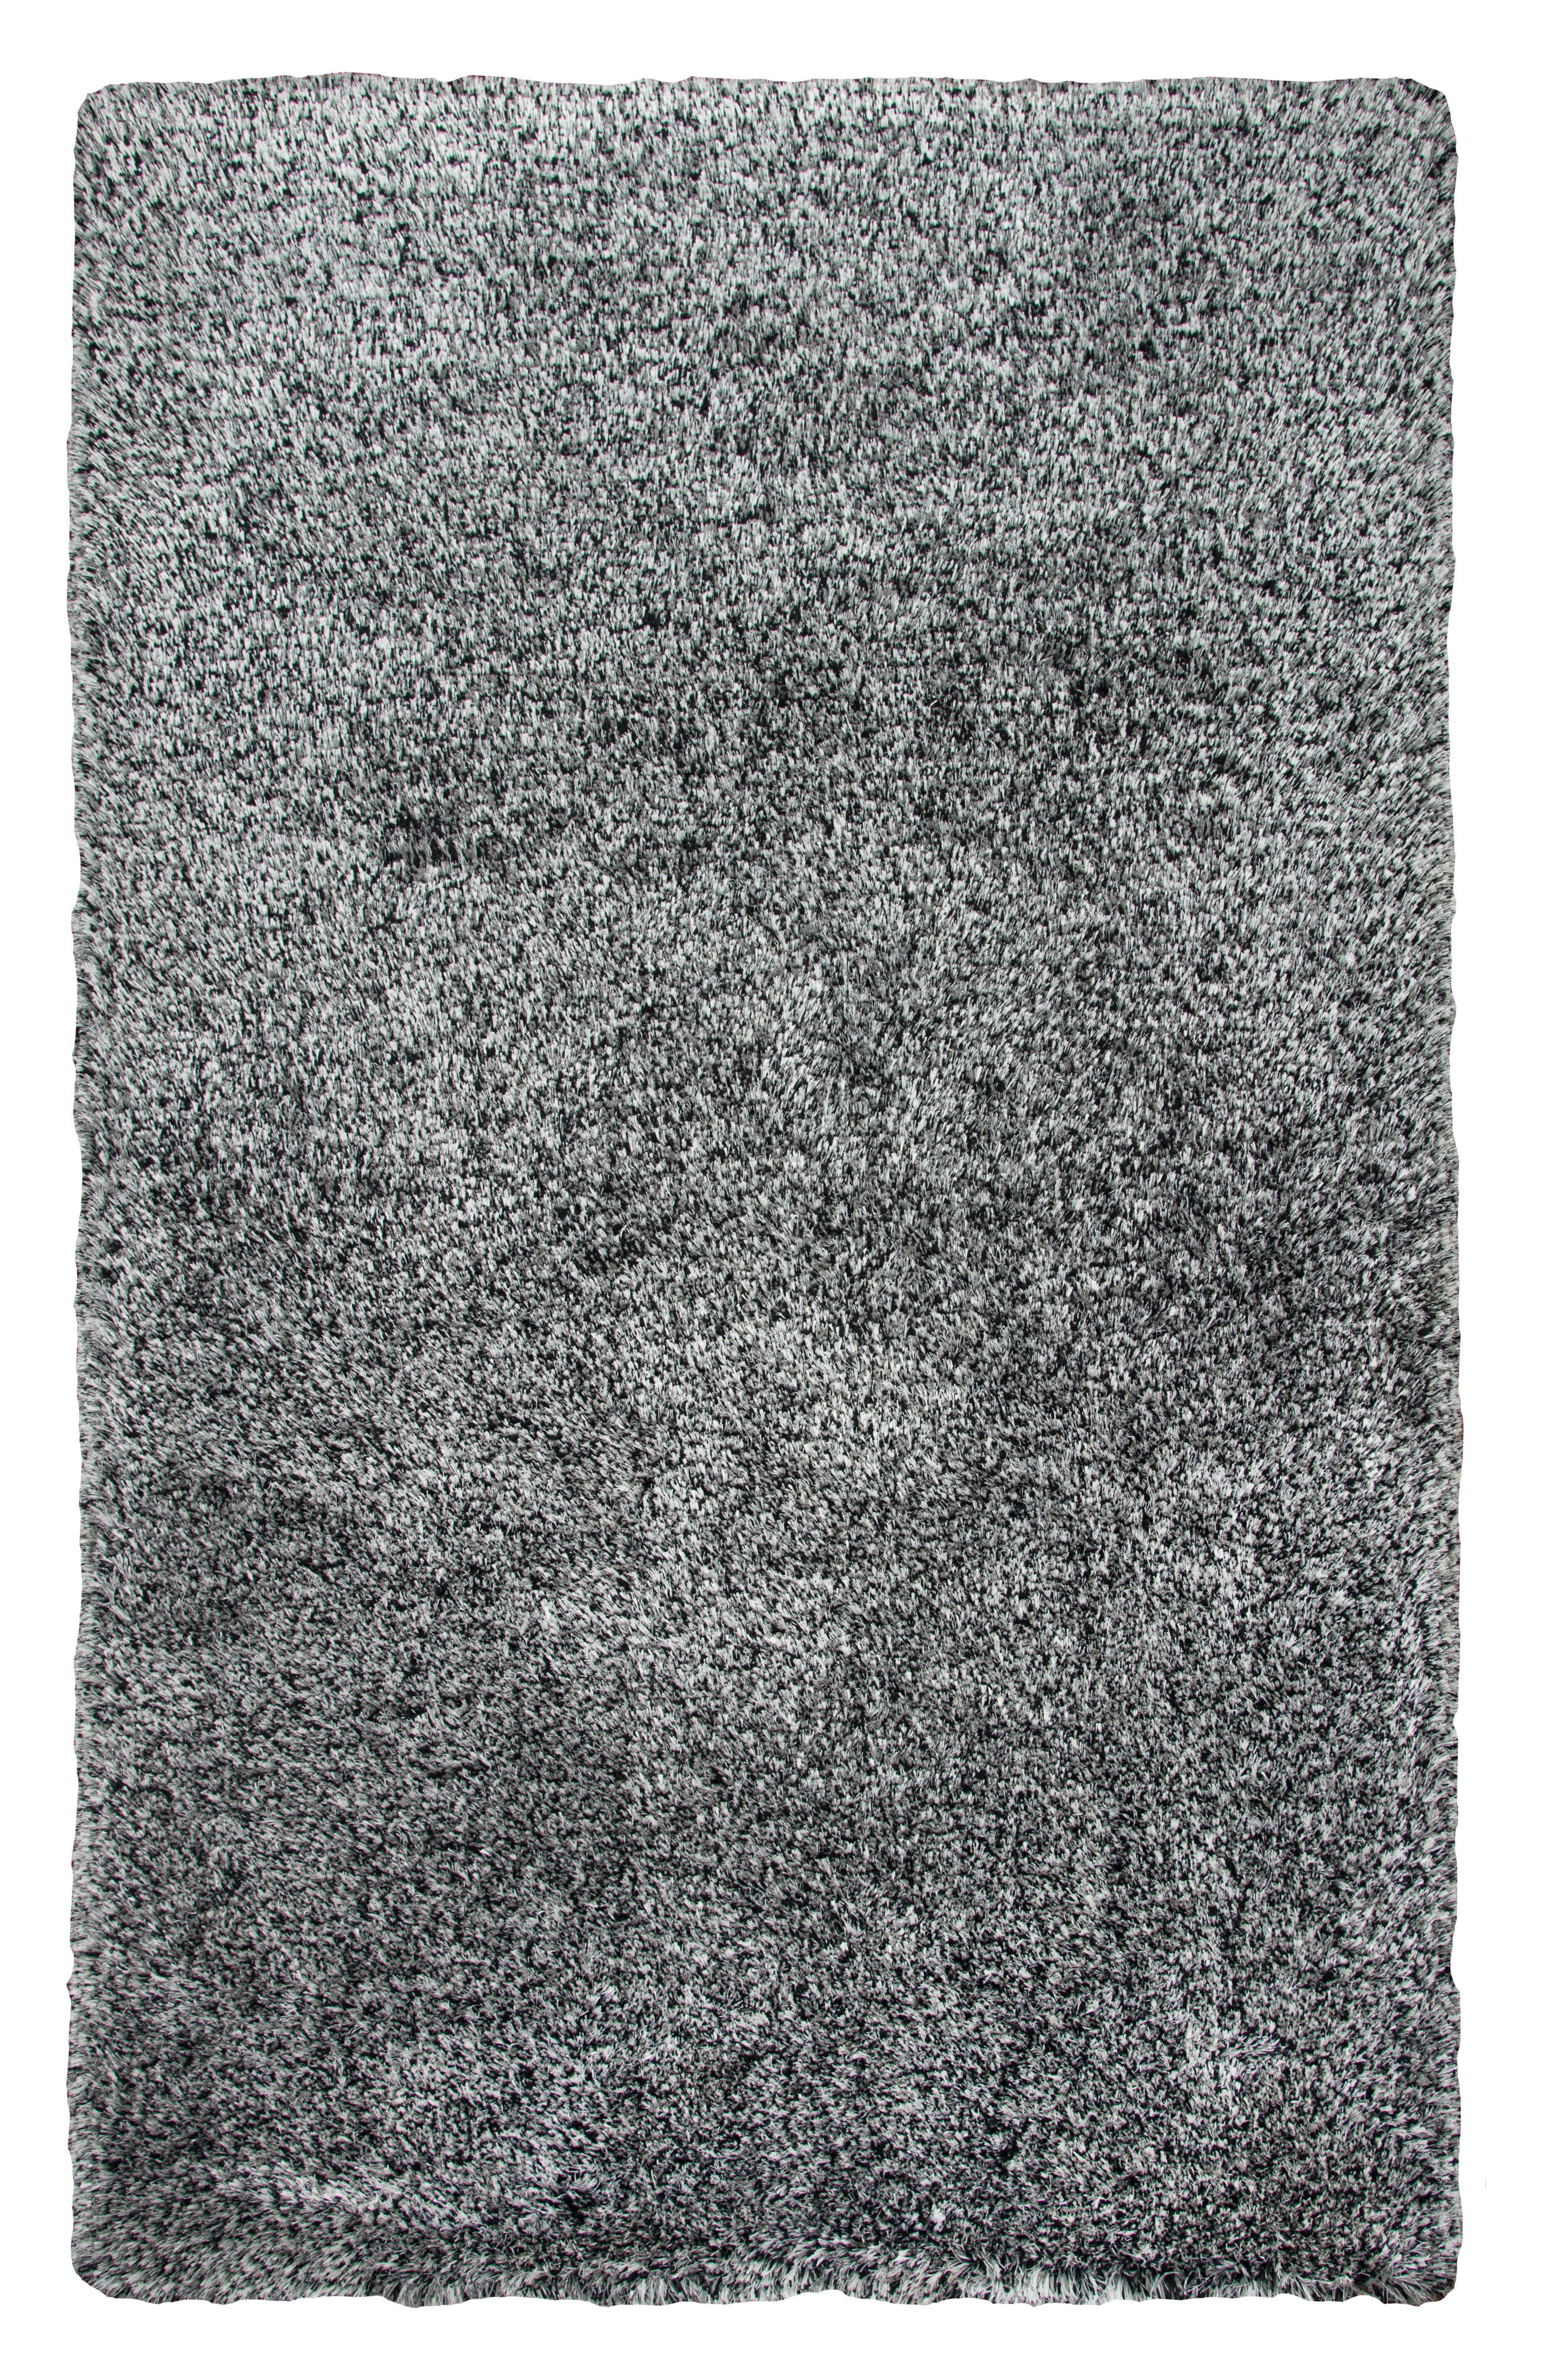 Commons Thea Rug,                         Main,                         color, Black